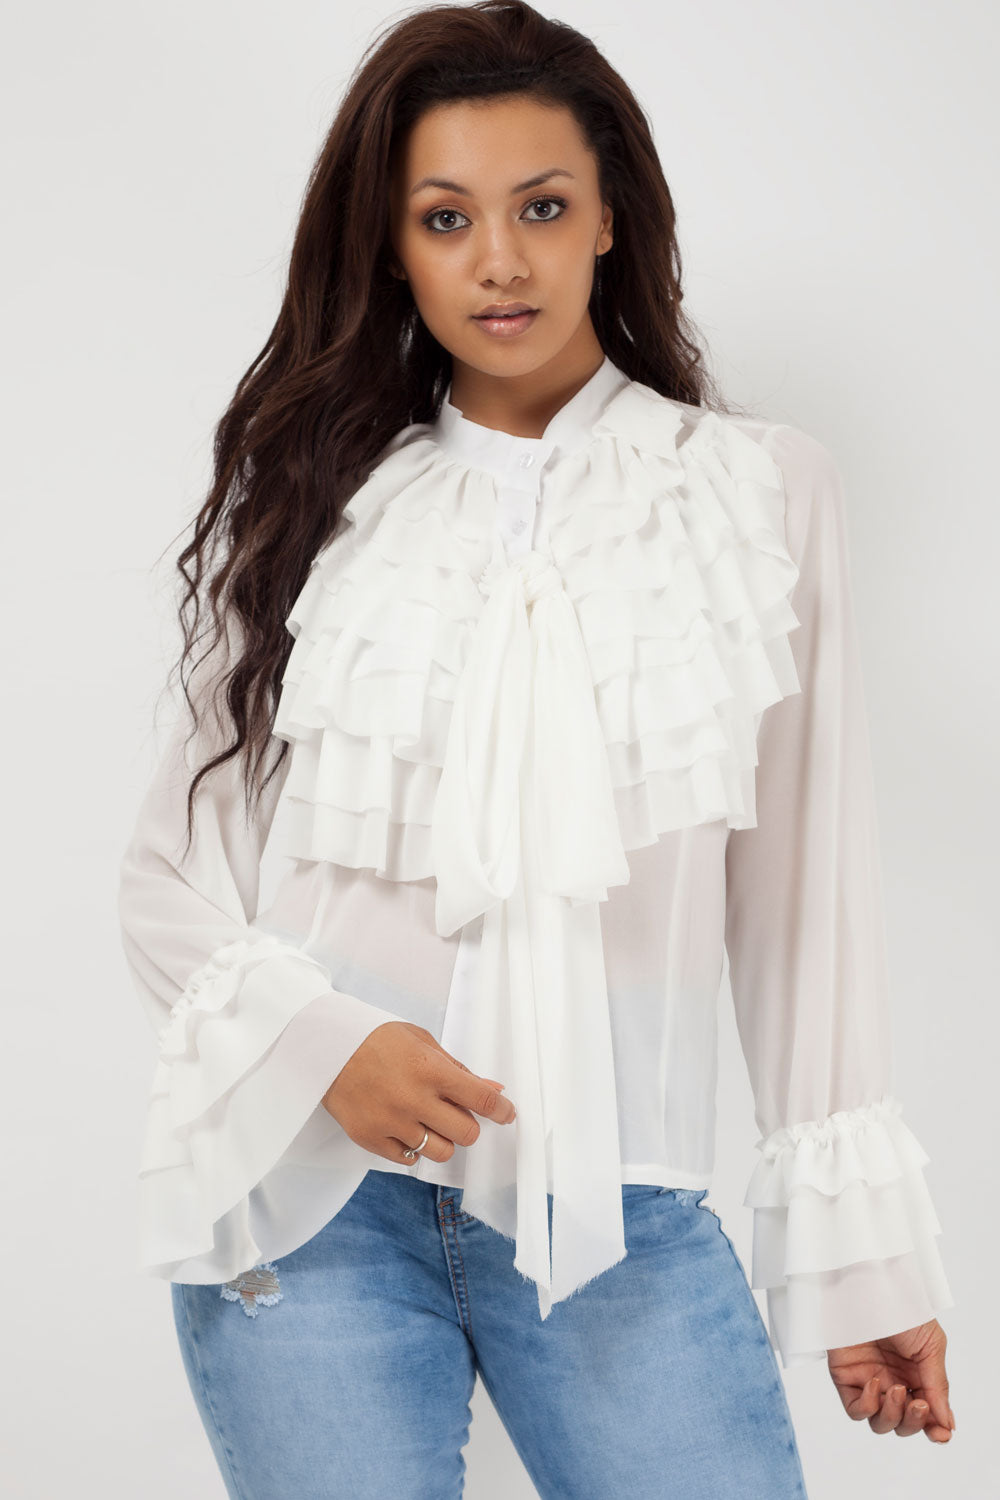 345e0a1f8638a4 white pussy bow blouse styledup fashion. black ruffle top long sleeve ...